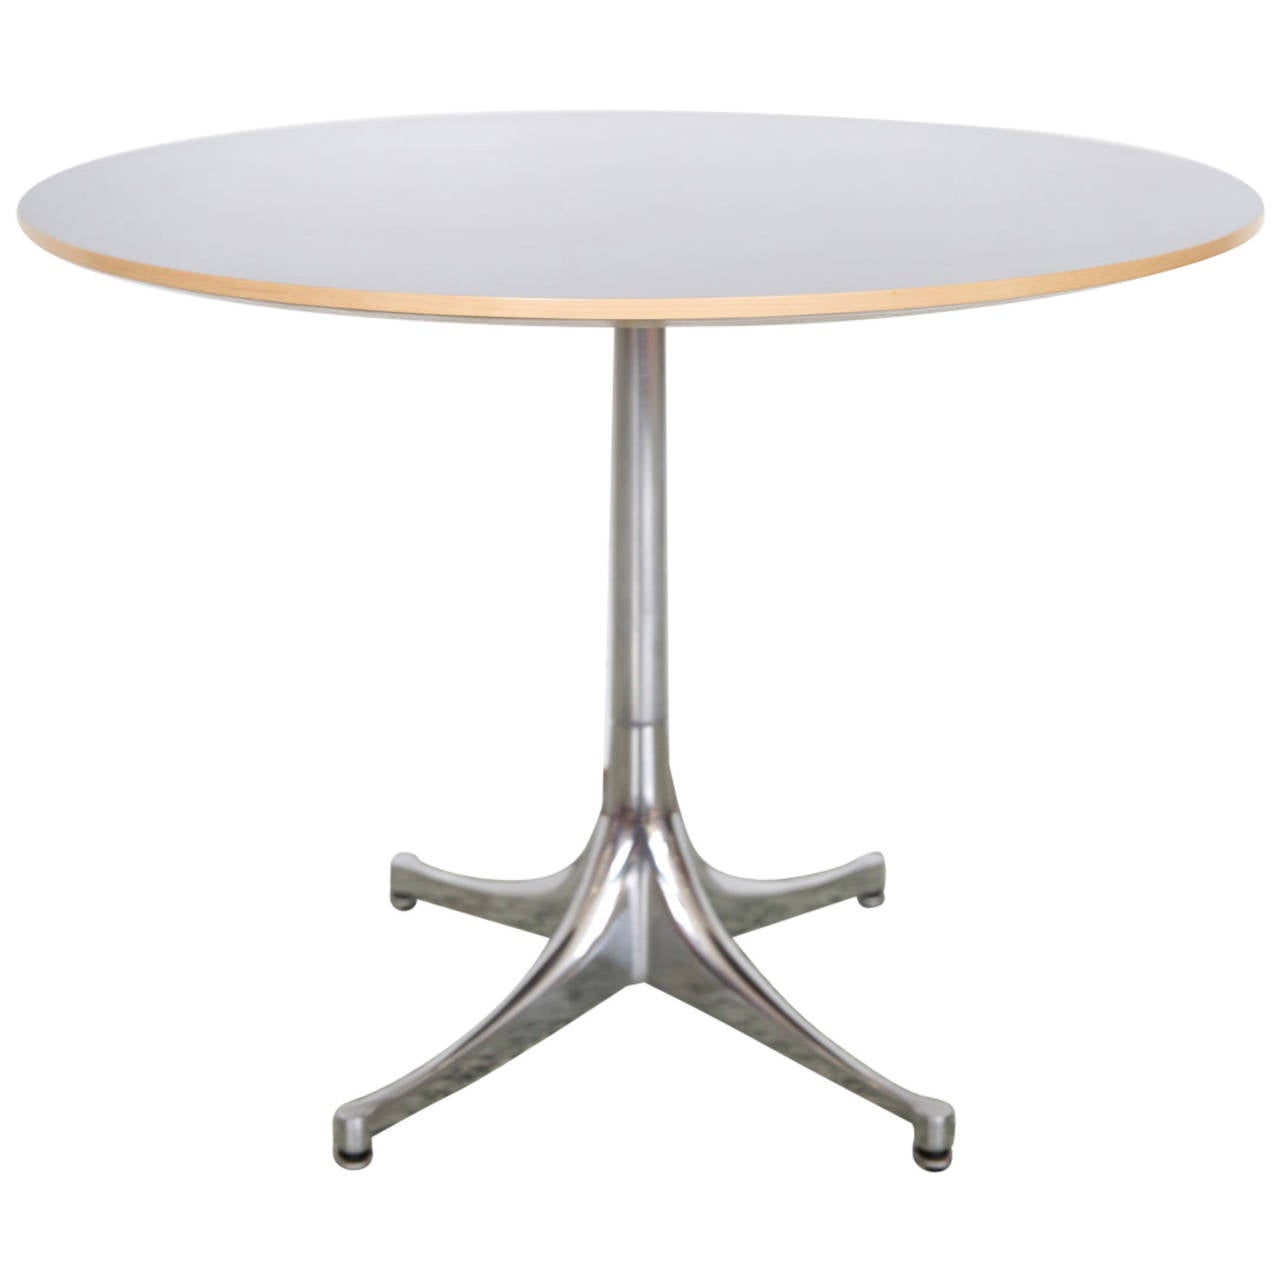 George nelson swag leg side table for heman miller at 1stdibs for Nelson swag leg table